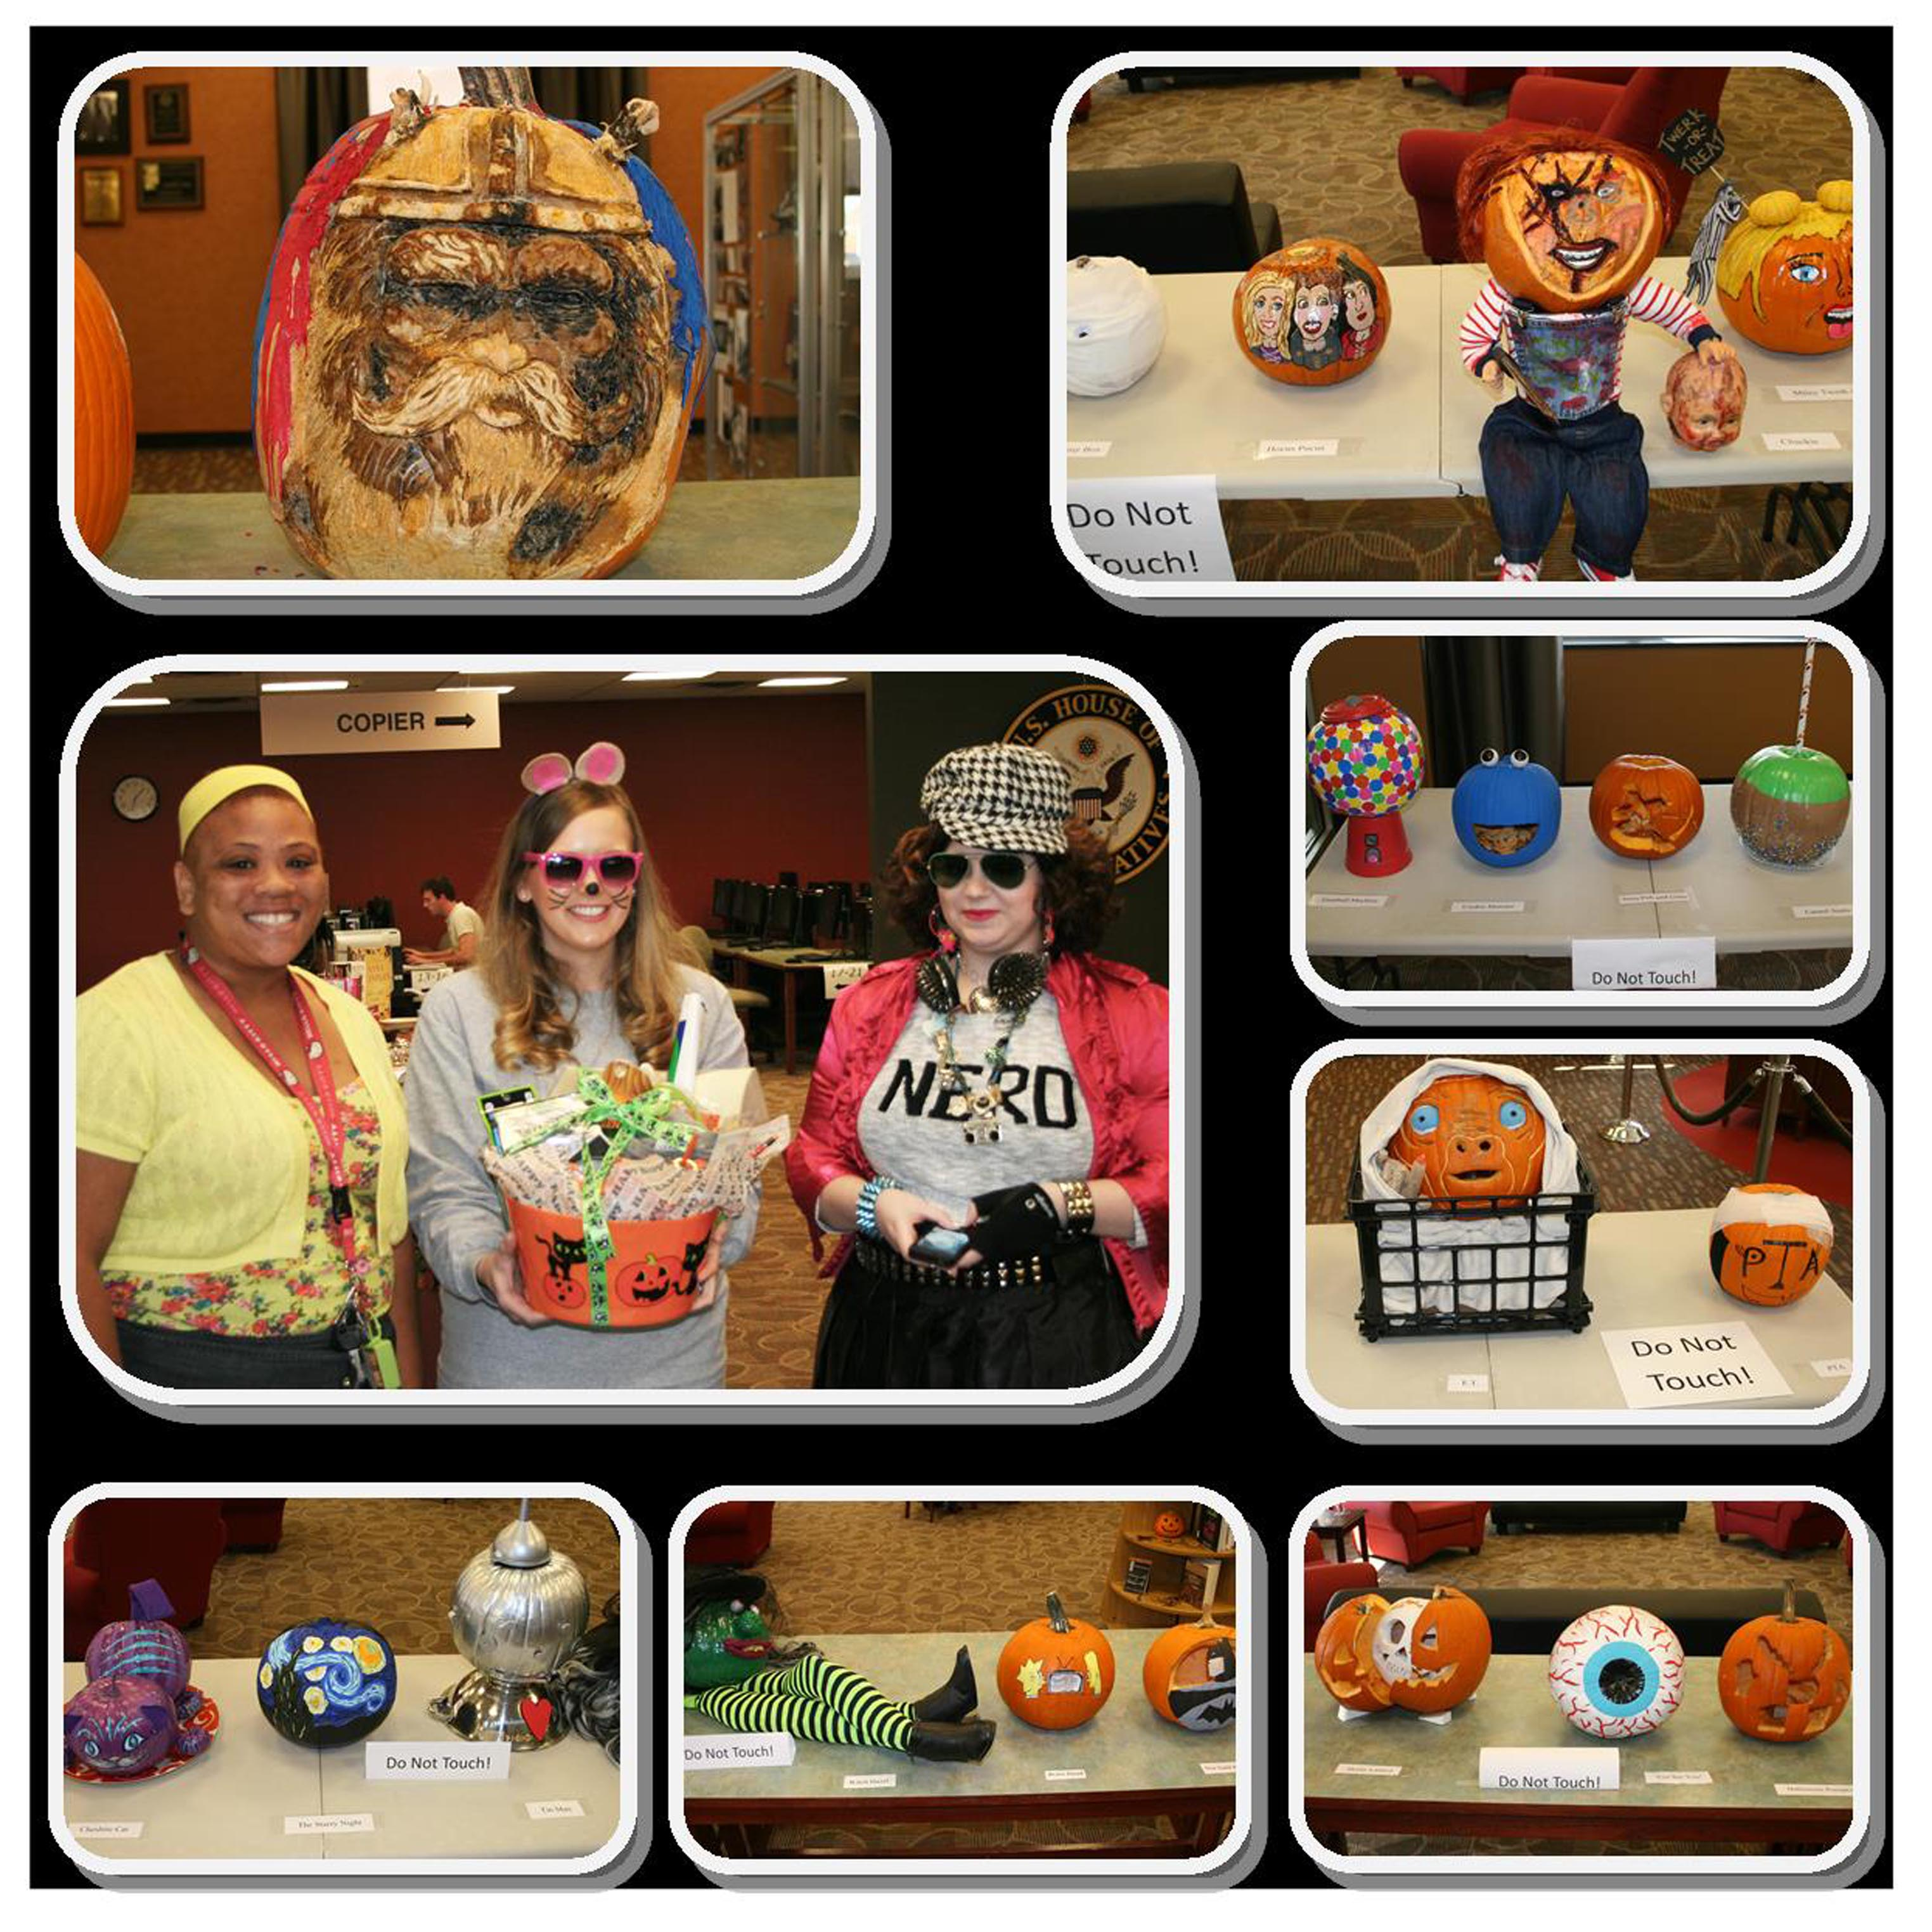 Pumpkin contest 4x4 for media and website